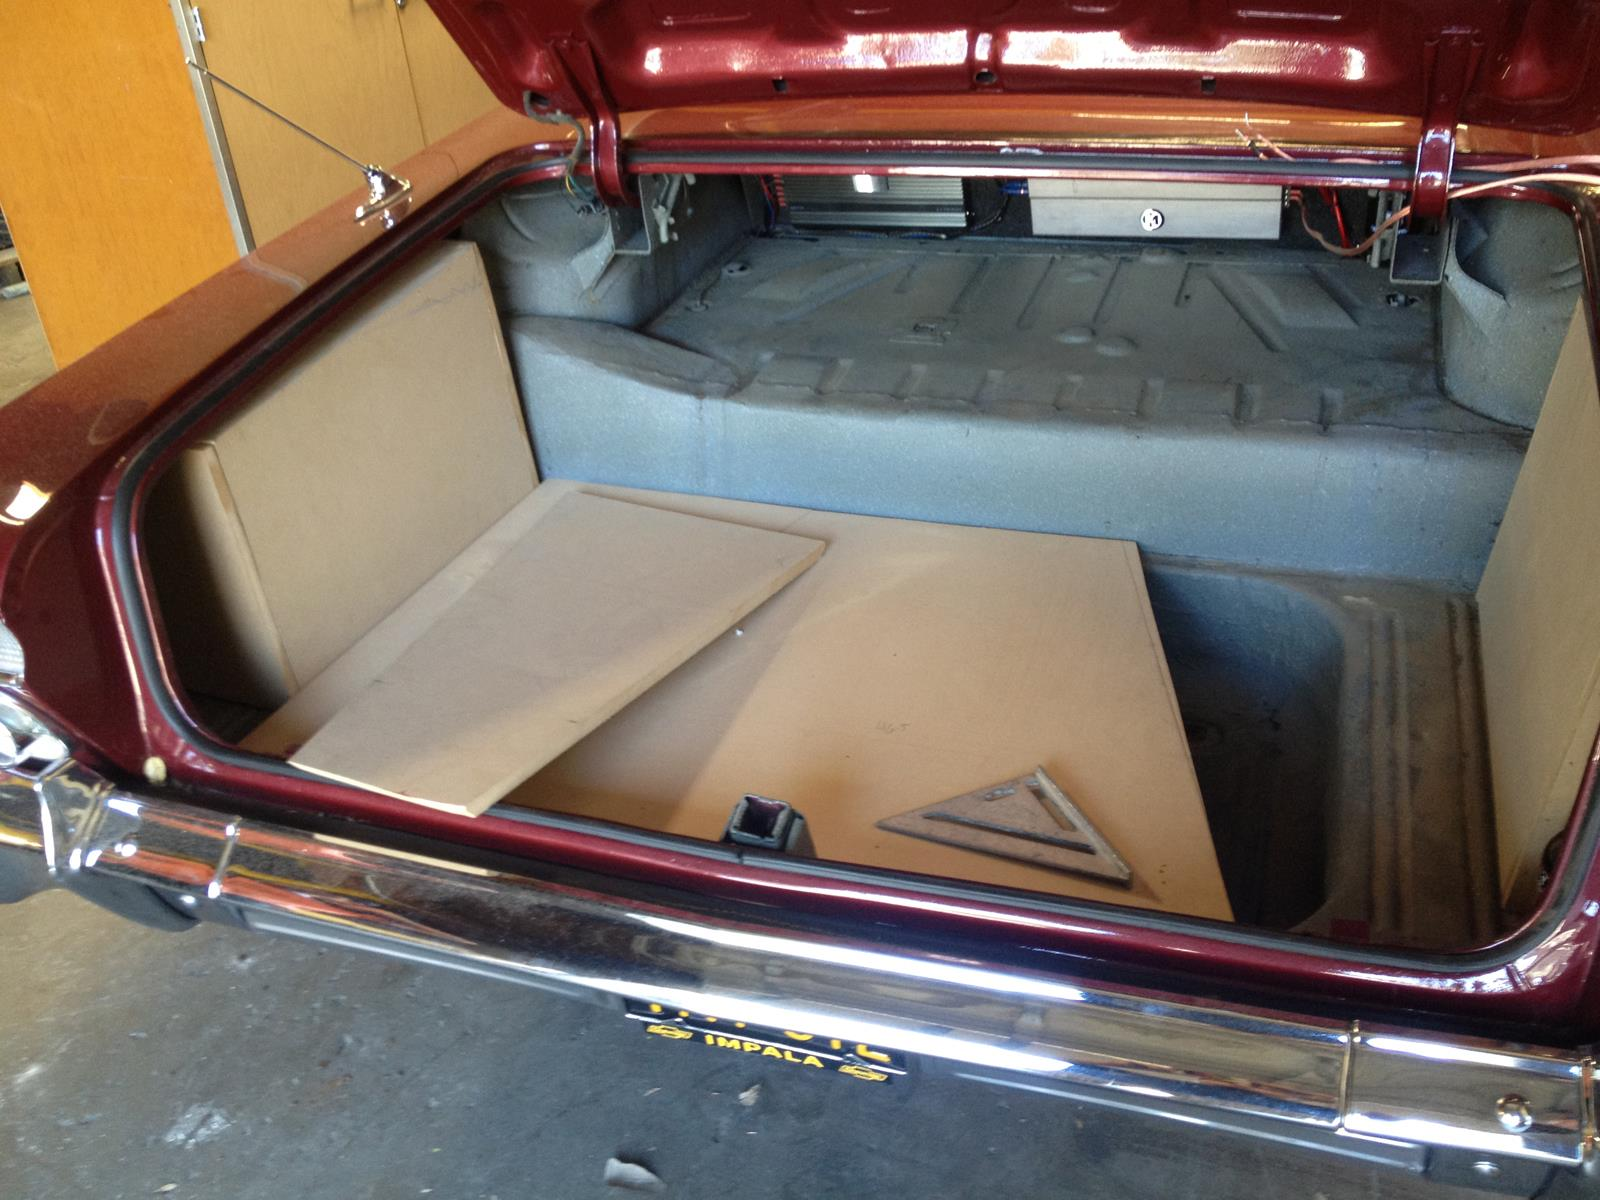 73310 additionally Battery Trunk Relocation Kit further 742078 2006 Built Evolution Ix Se as well 1964 Chevrolet Impala Air Suspension in addition Paracord Grab Handles Black Black Pair. on underhood battery relocation